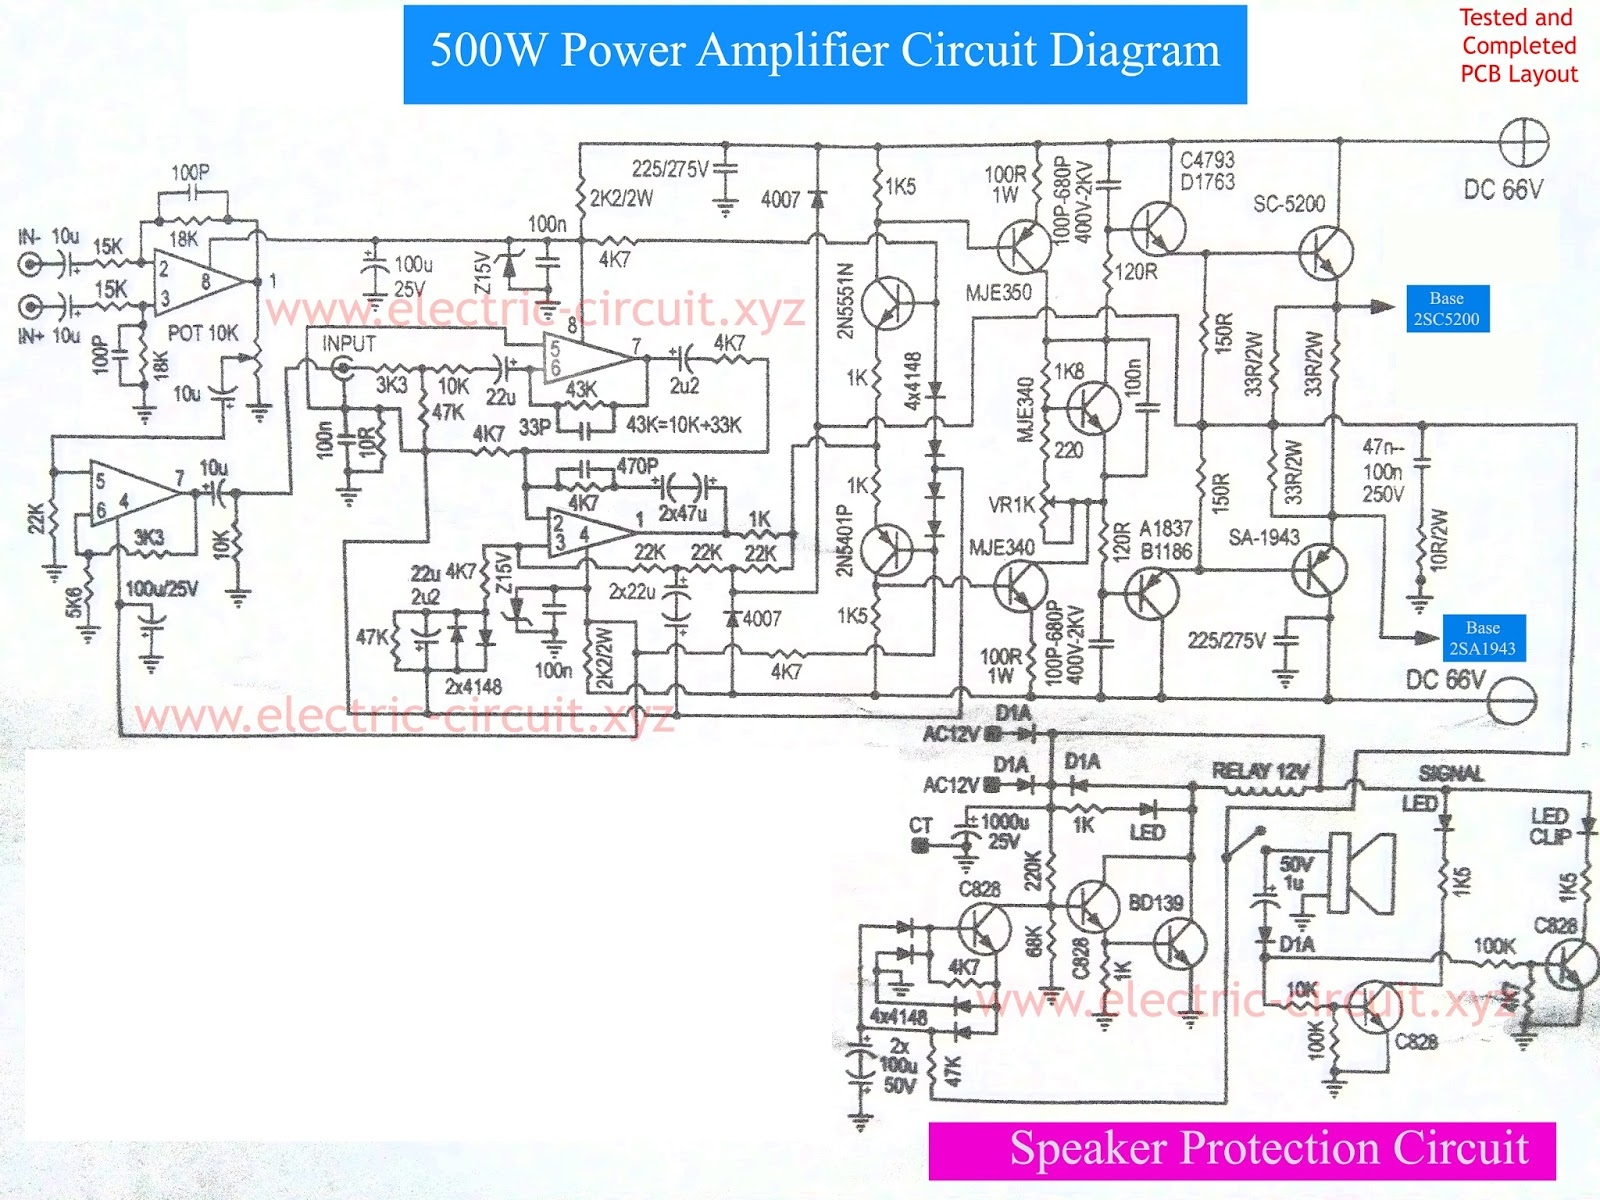 Power Amplifier 500W with Speaker Protection circuit diagram